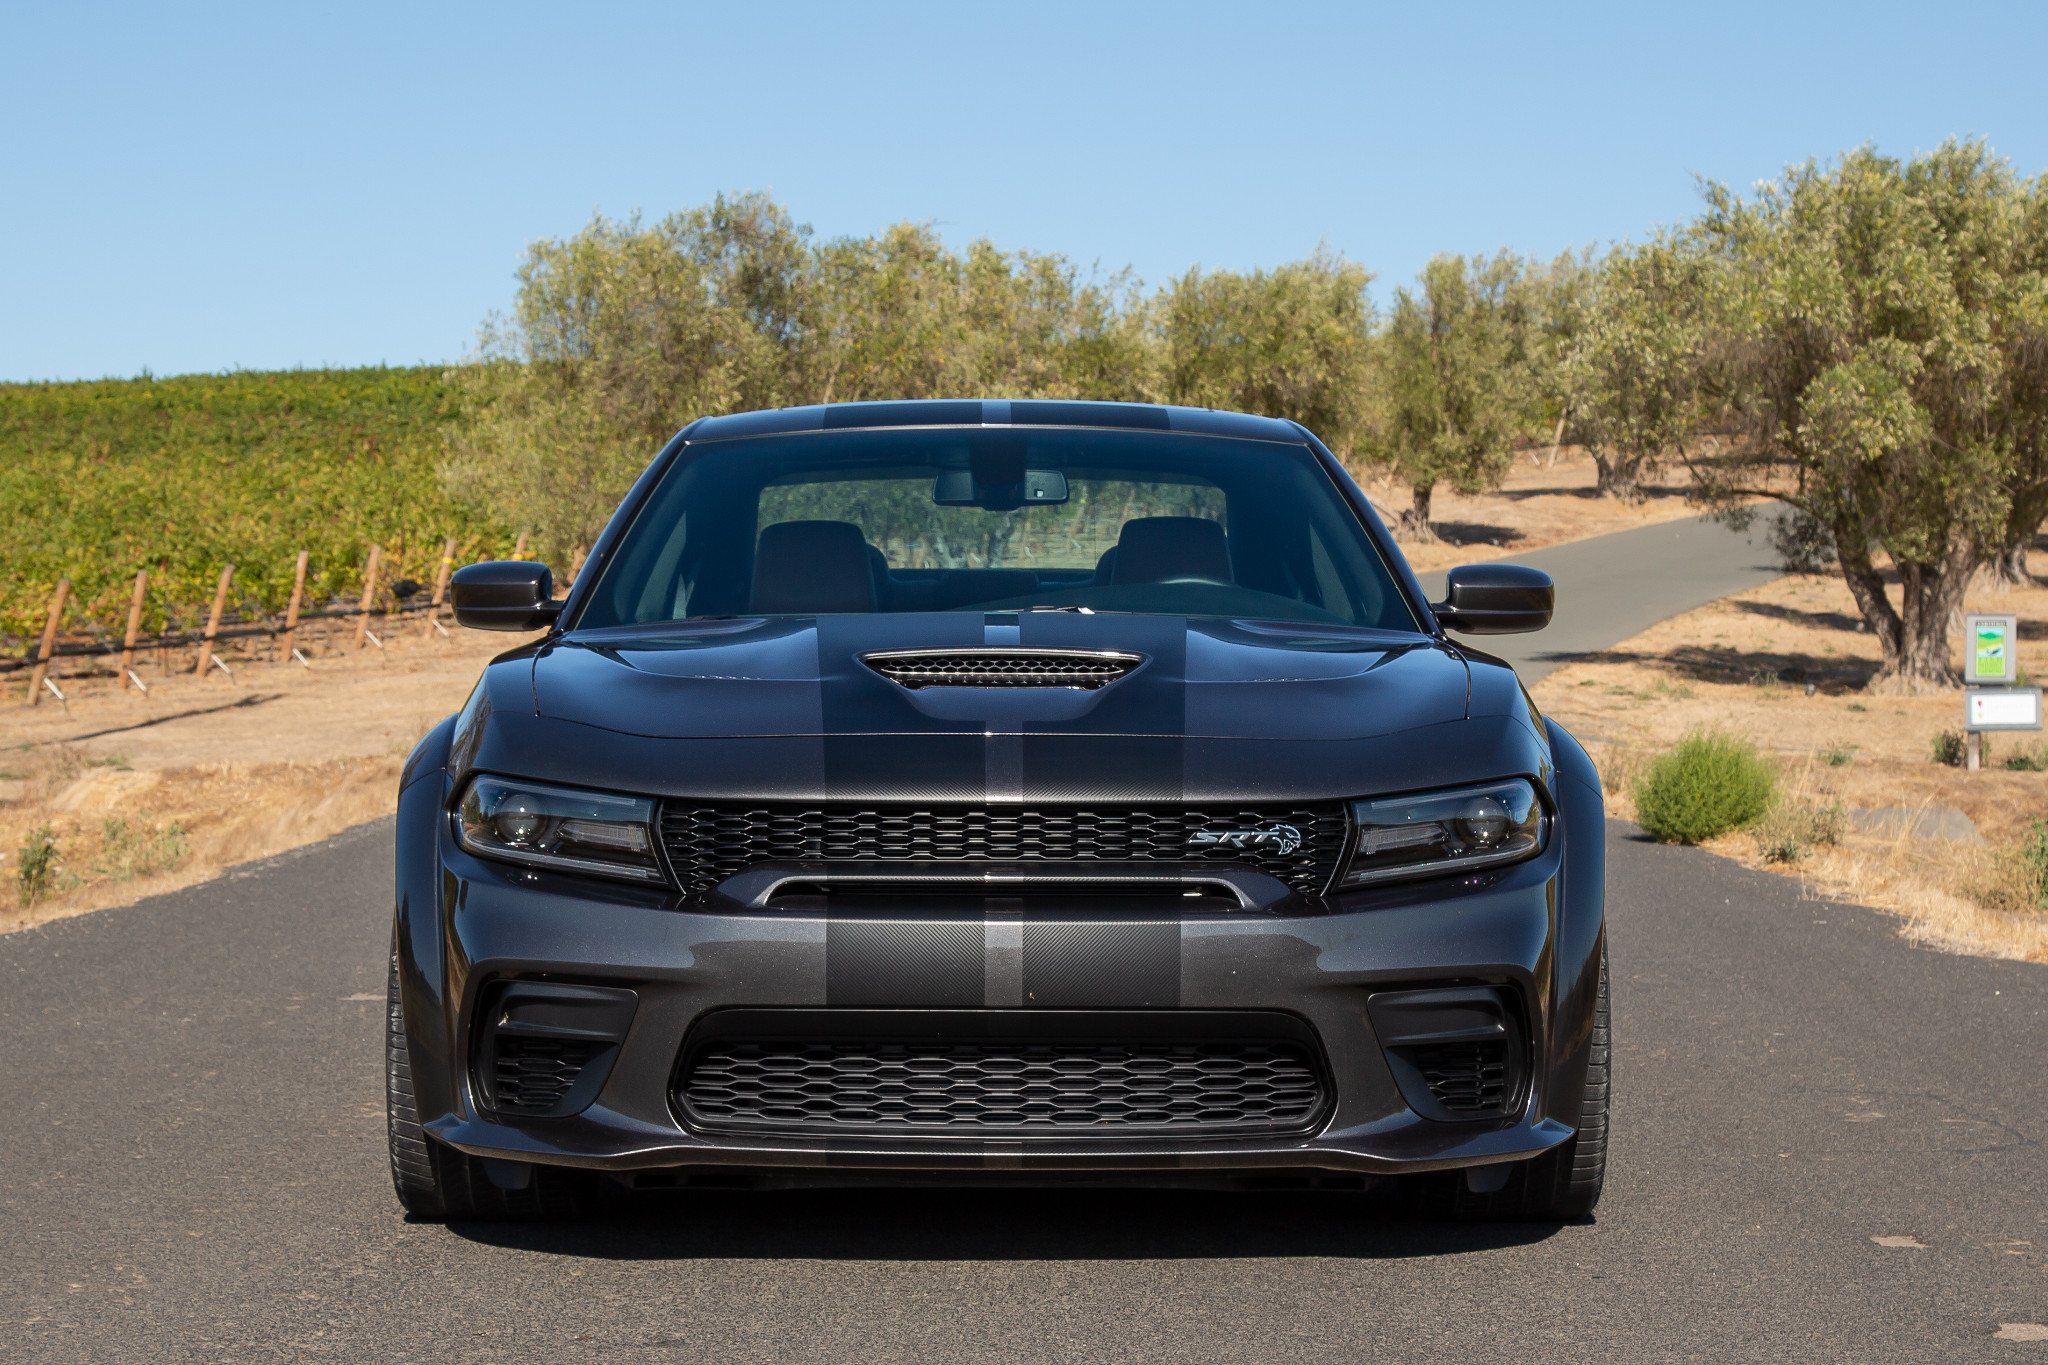 2020 Dodge Charger Scat Pack And Hellcat Widebody Review